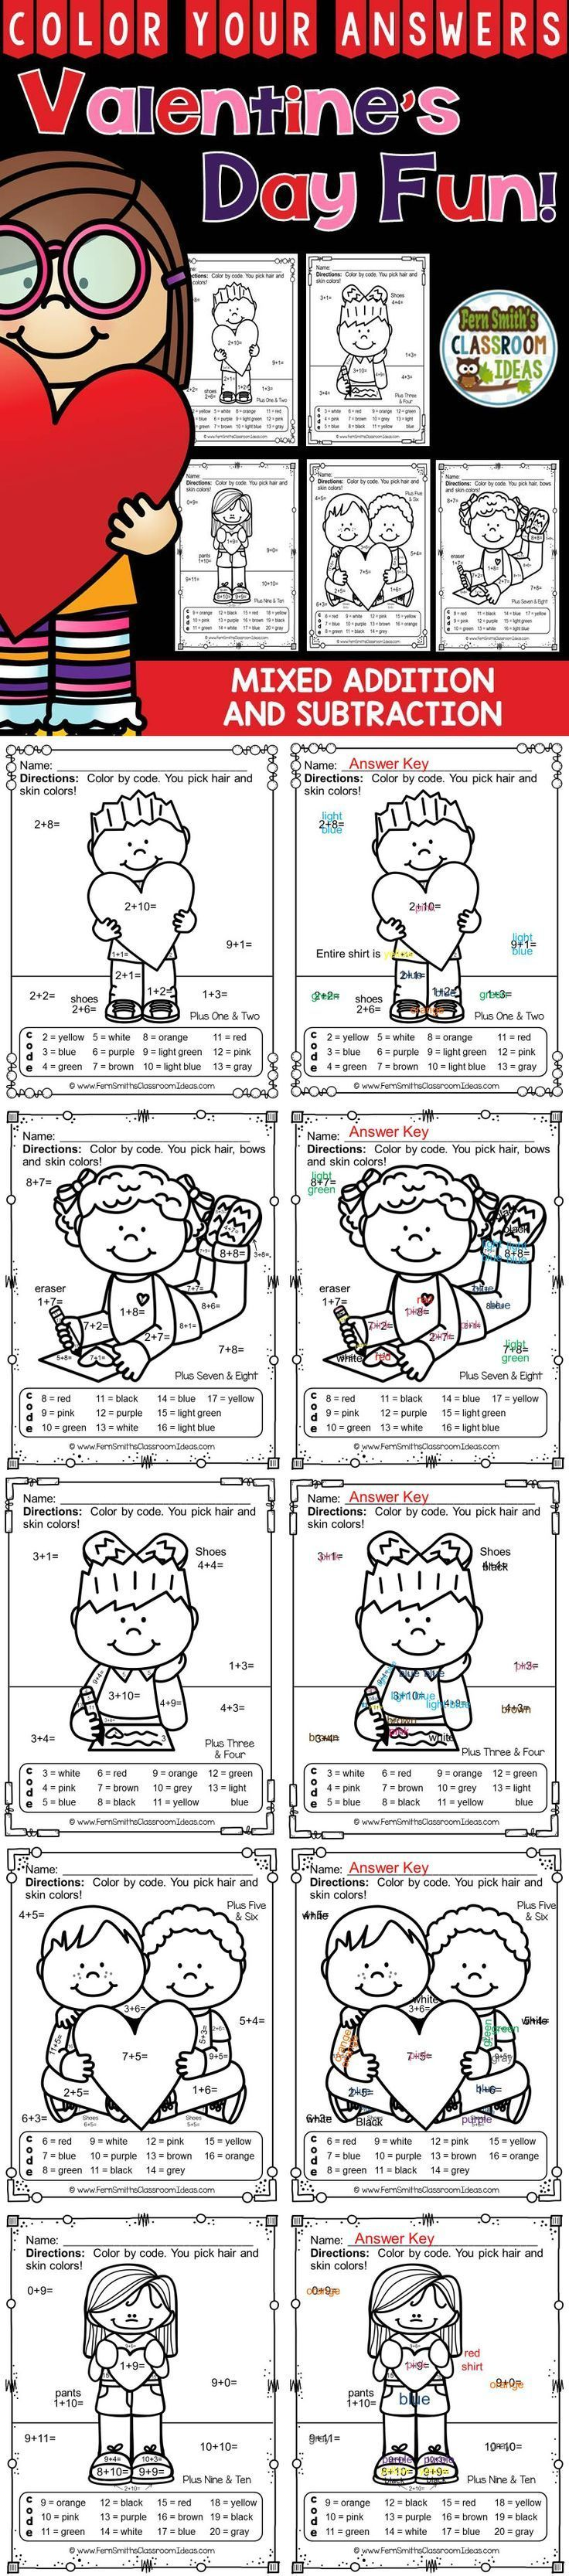 #Valentines Valentines Day Addition and Subtraction Facts - Color Your Answers Printables for St. Valentine's Day Addition and Subtraction in your classroom. FIVE No Prep Printables that can be used for your math center, small group, RTI pull out, seat work, substitute days or homework, answer keys included too! #TPT #FernSmithsClassroomIdeas {paid}